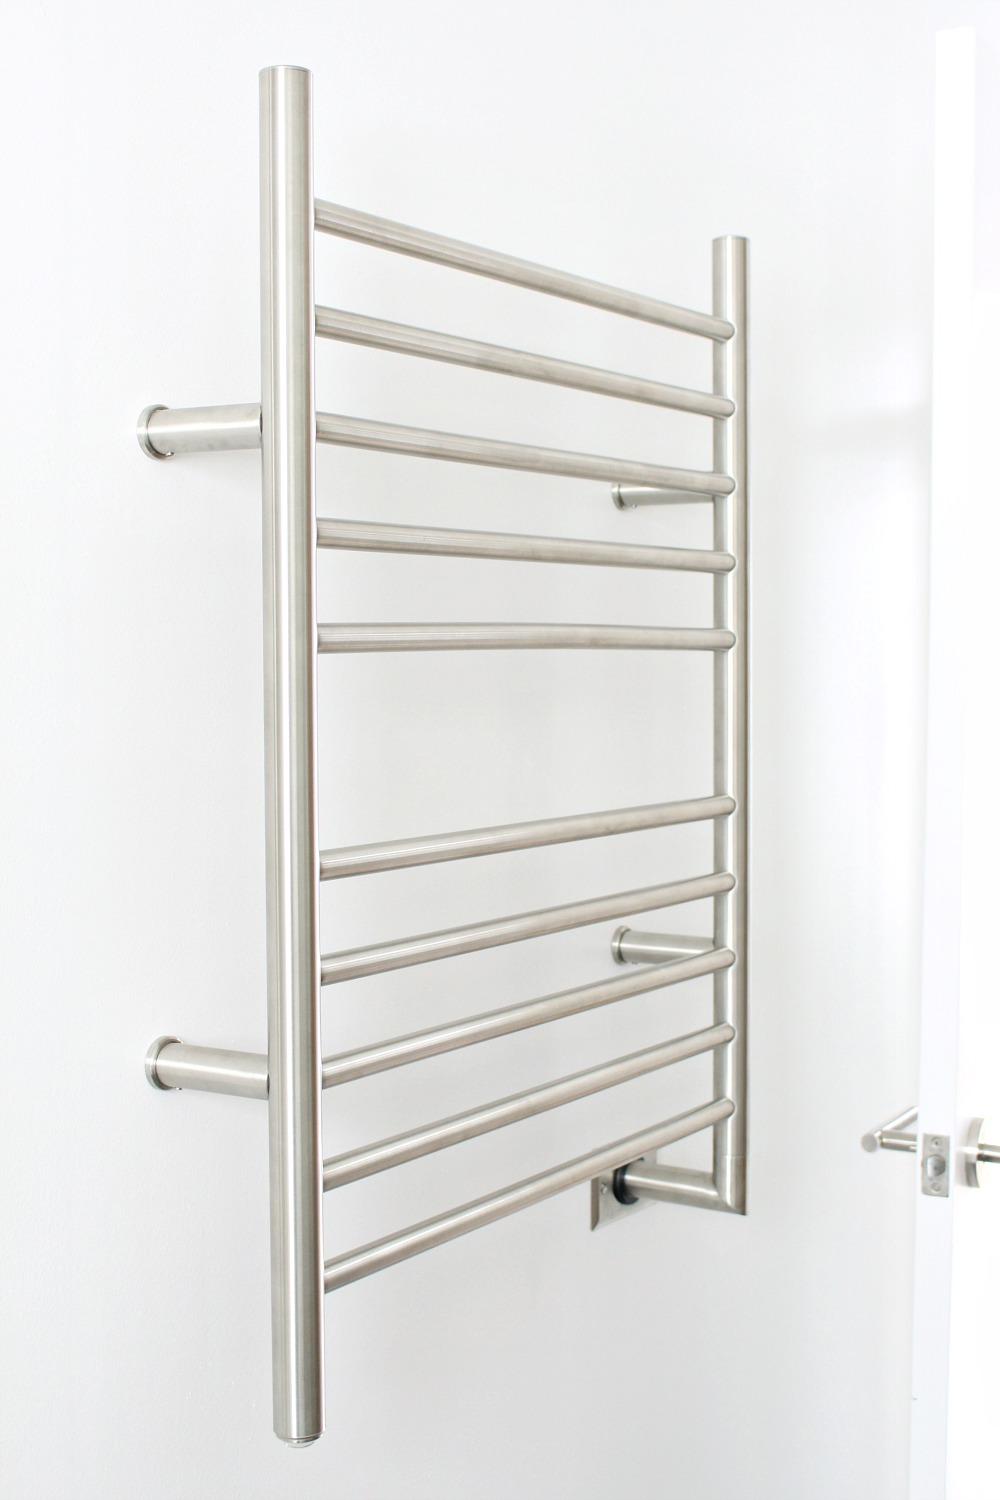 Amba Radiant Straight Hardwired Wall Mounted Towel Warmer Review